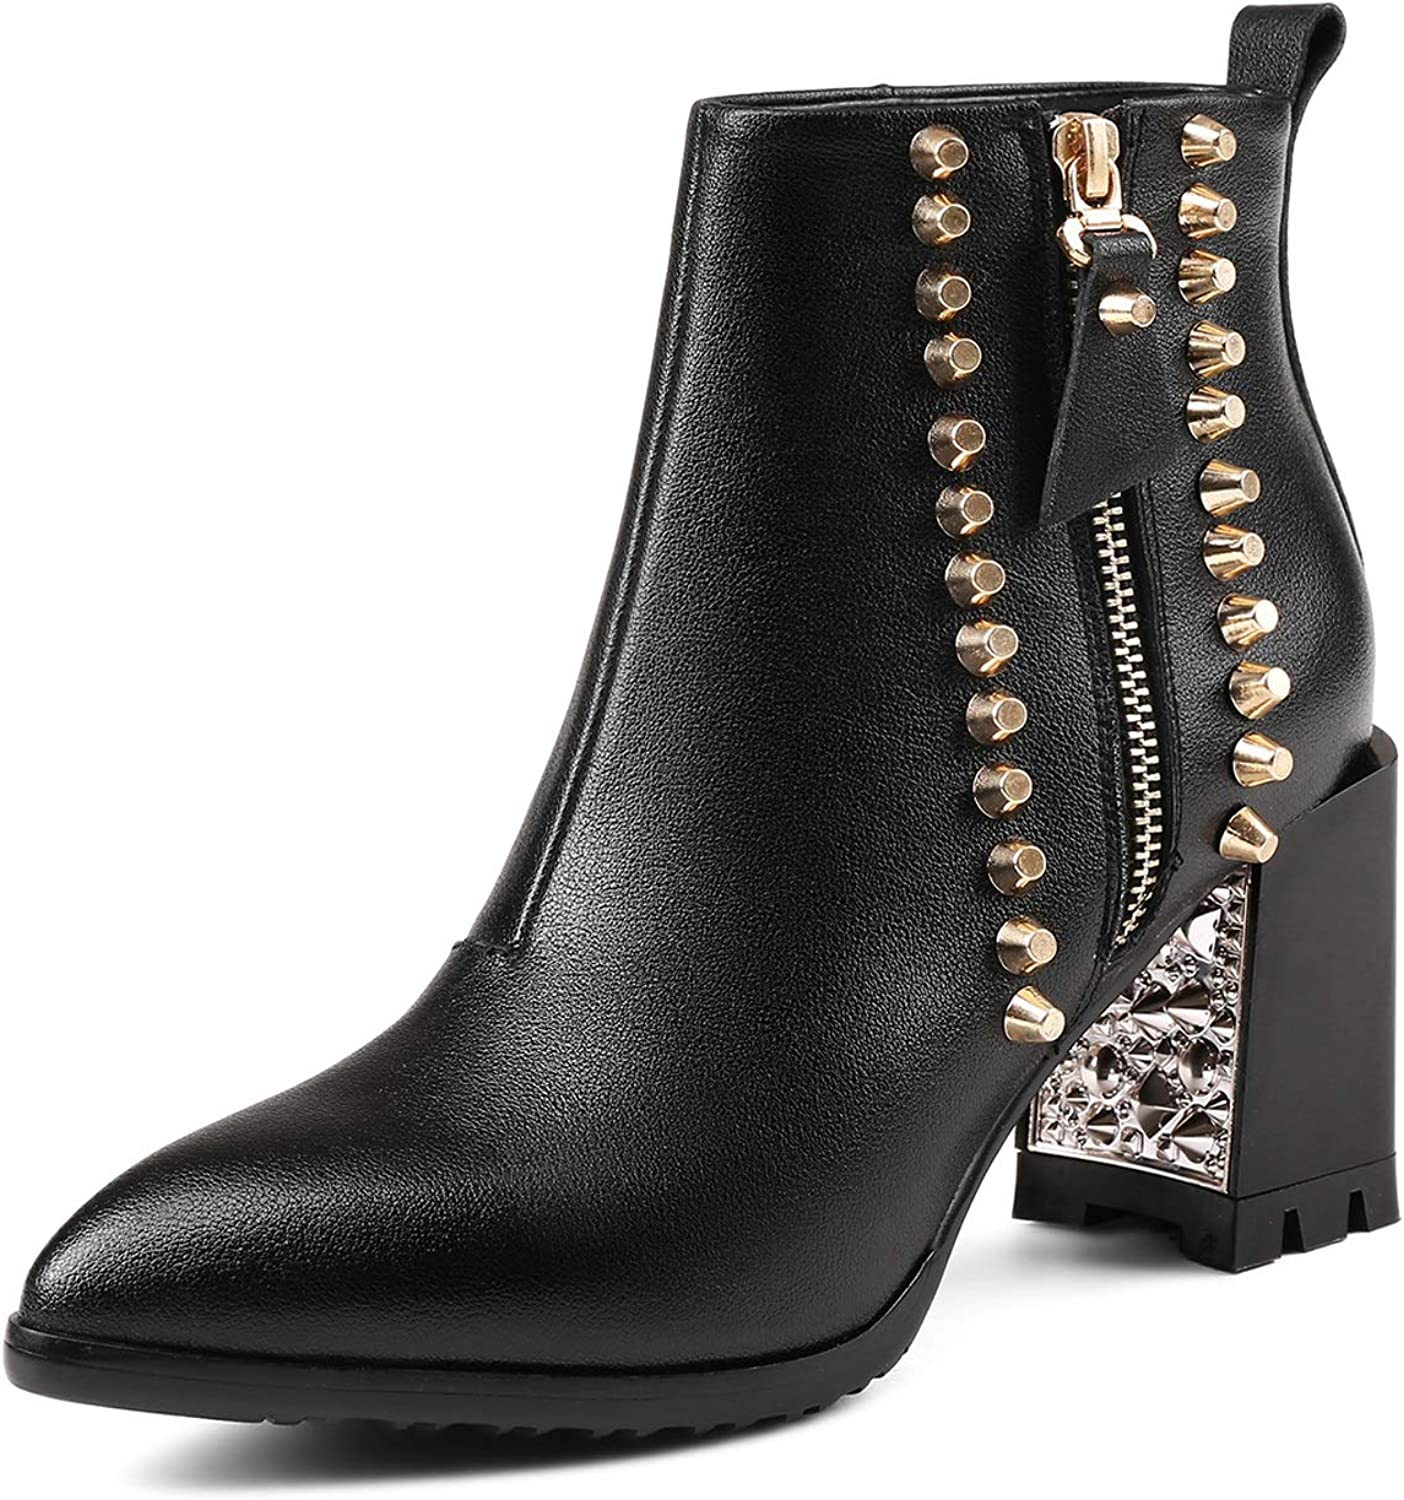 Women's Booties, High Heel Thick Heel Wild Plus Velvet Martin Boots Ladies Fall Winter New Rivet Fashion Boots (color   Black, Size   37)